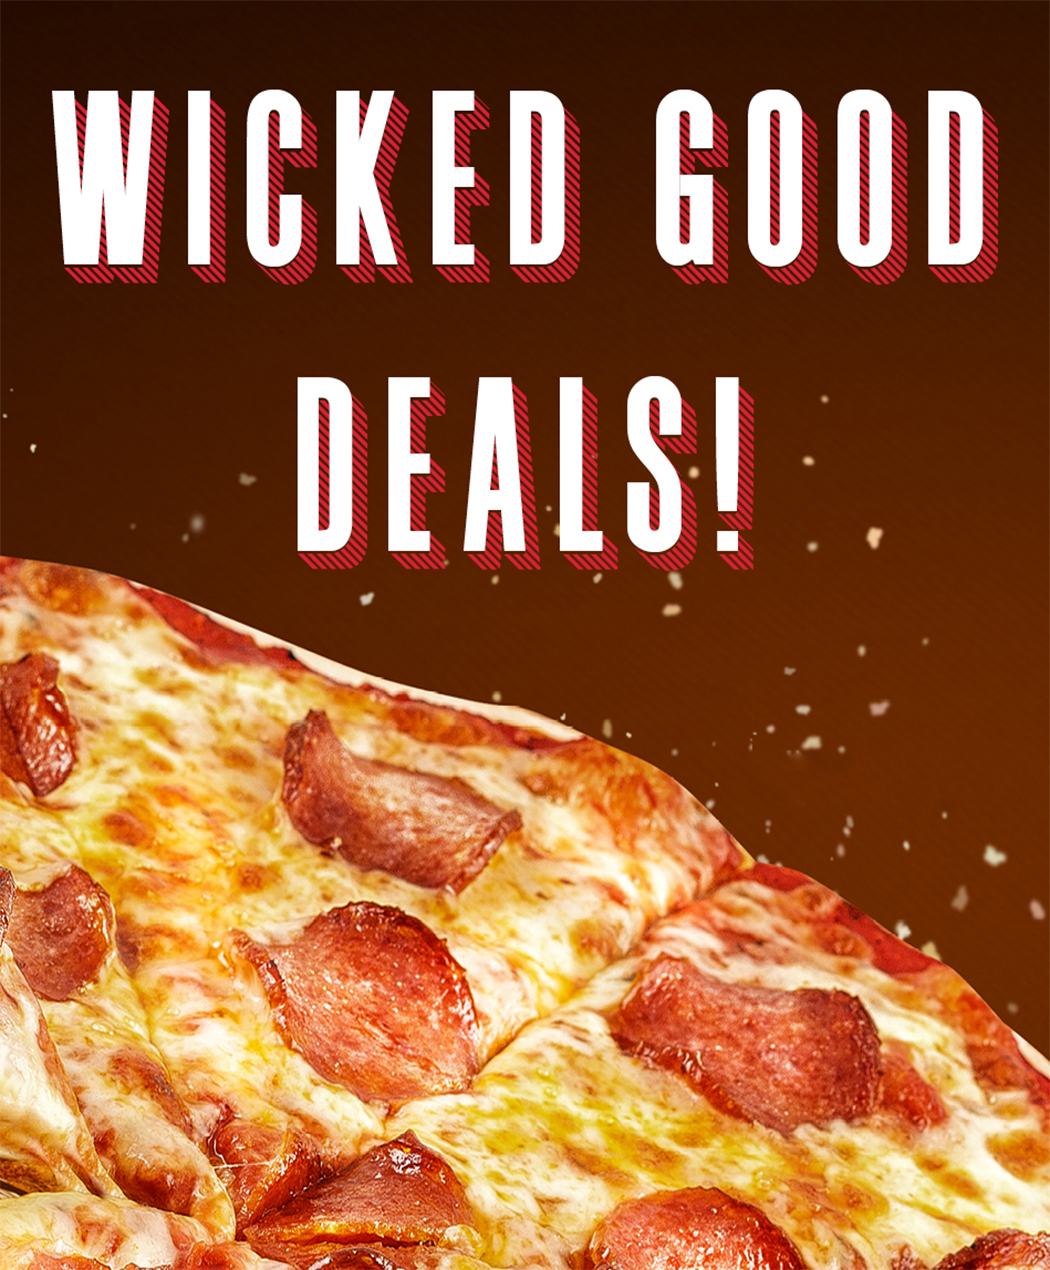 Wicked Good Deals